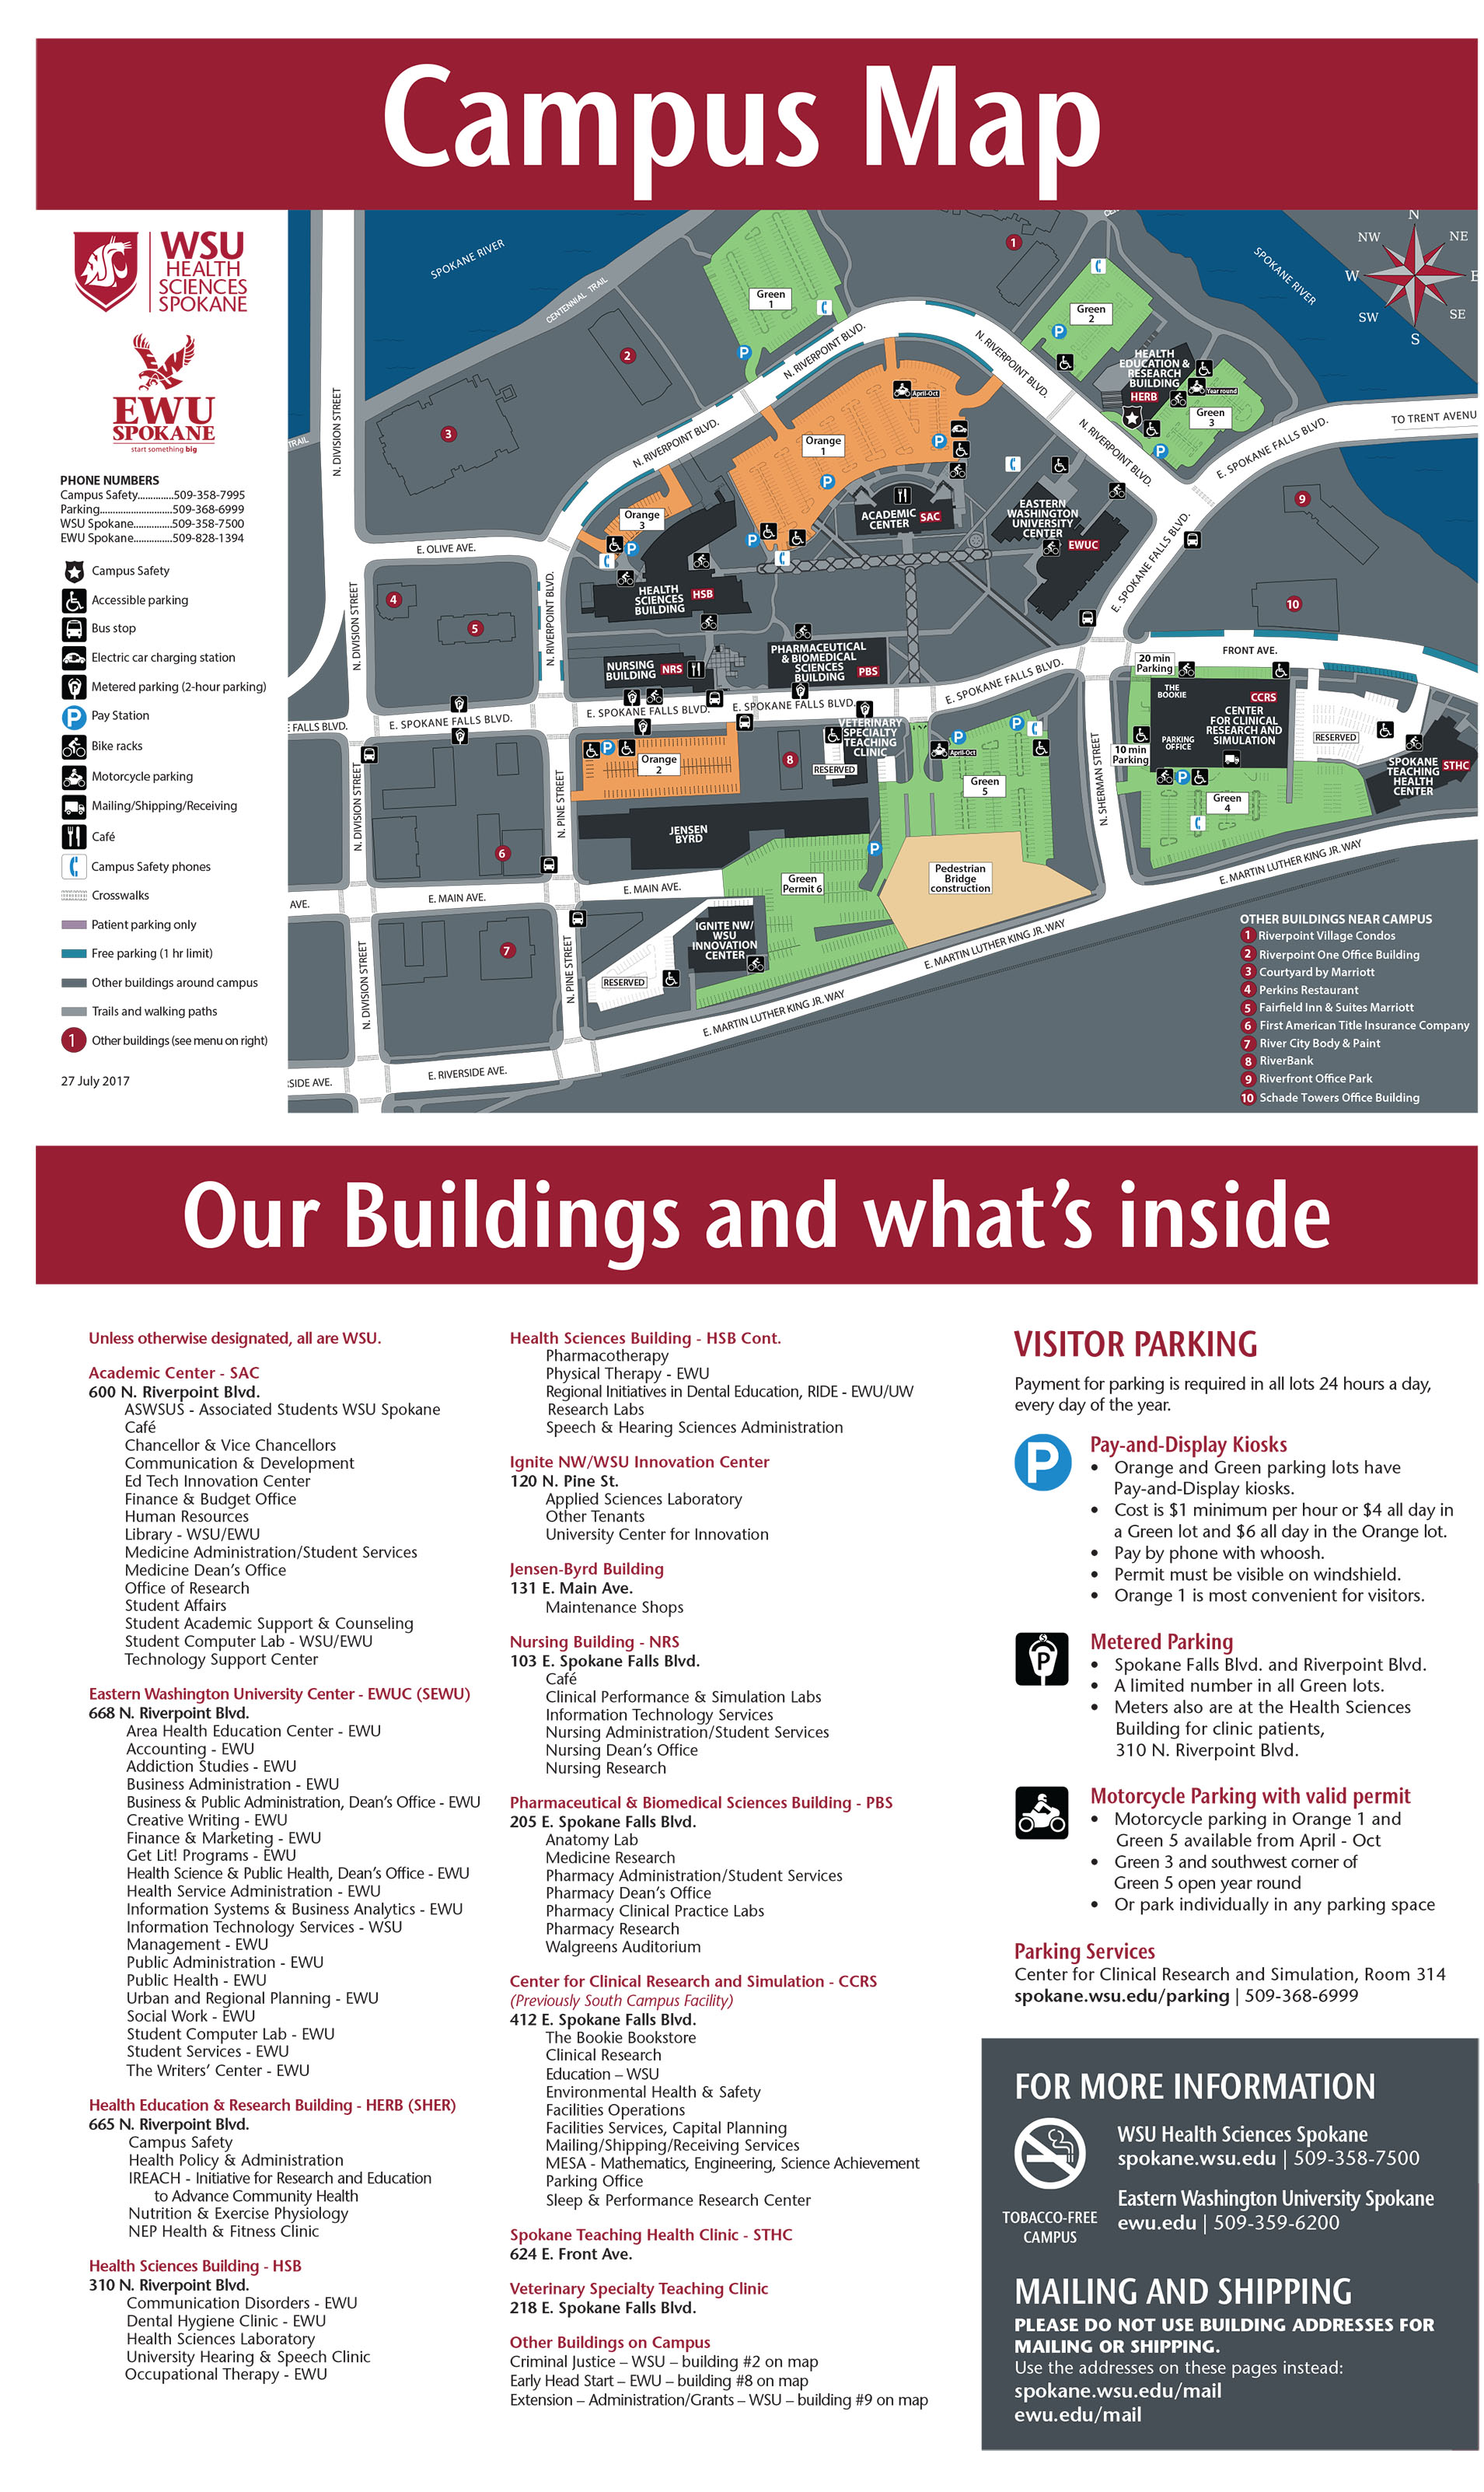 WSU Spokane campus map with directory